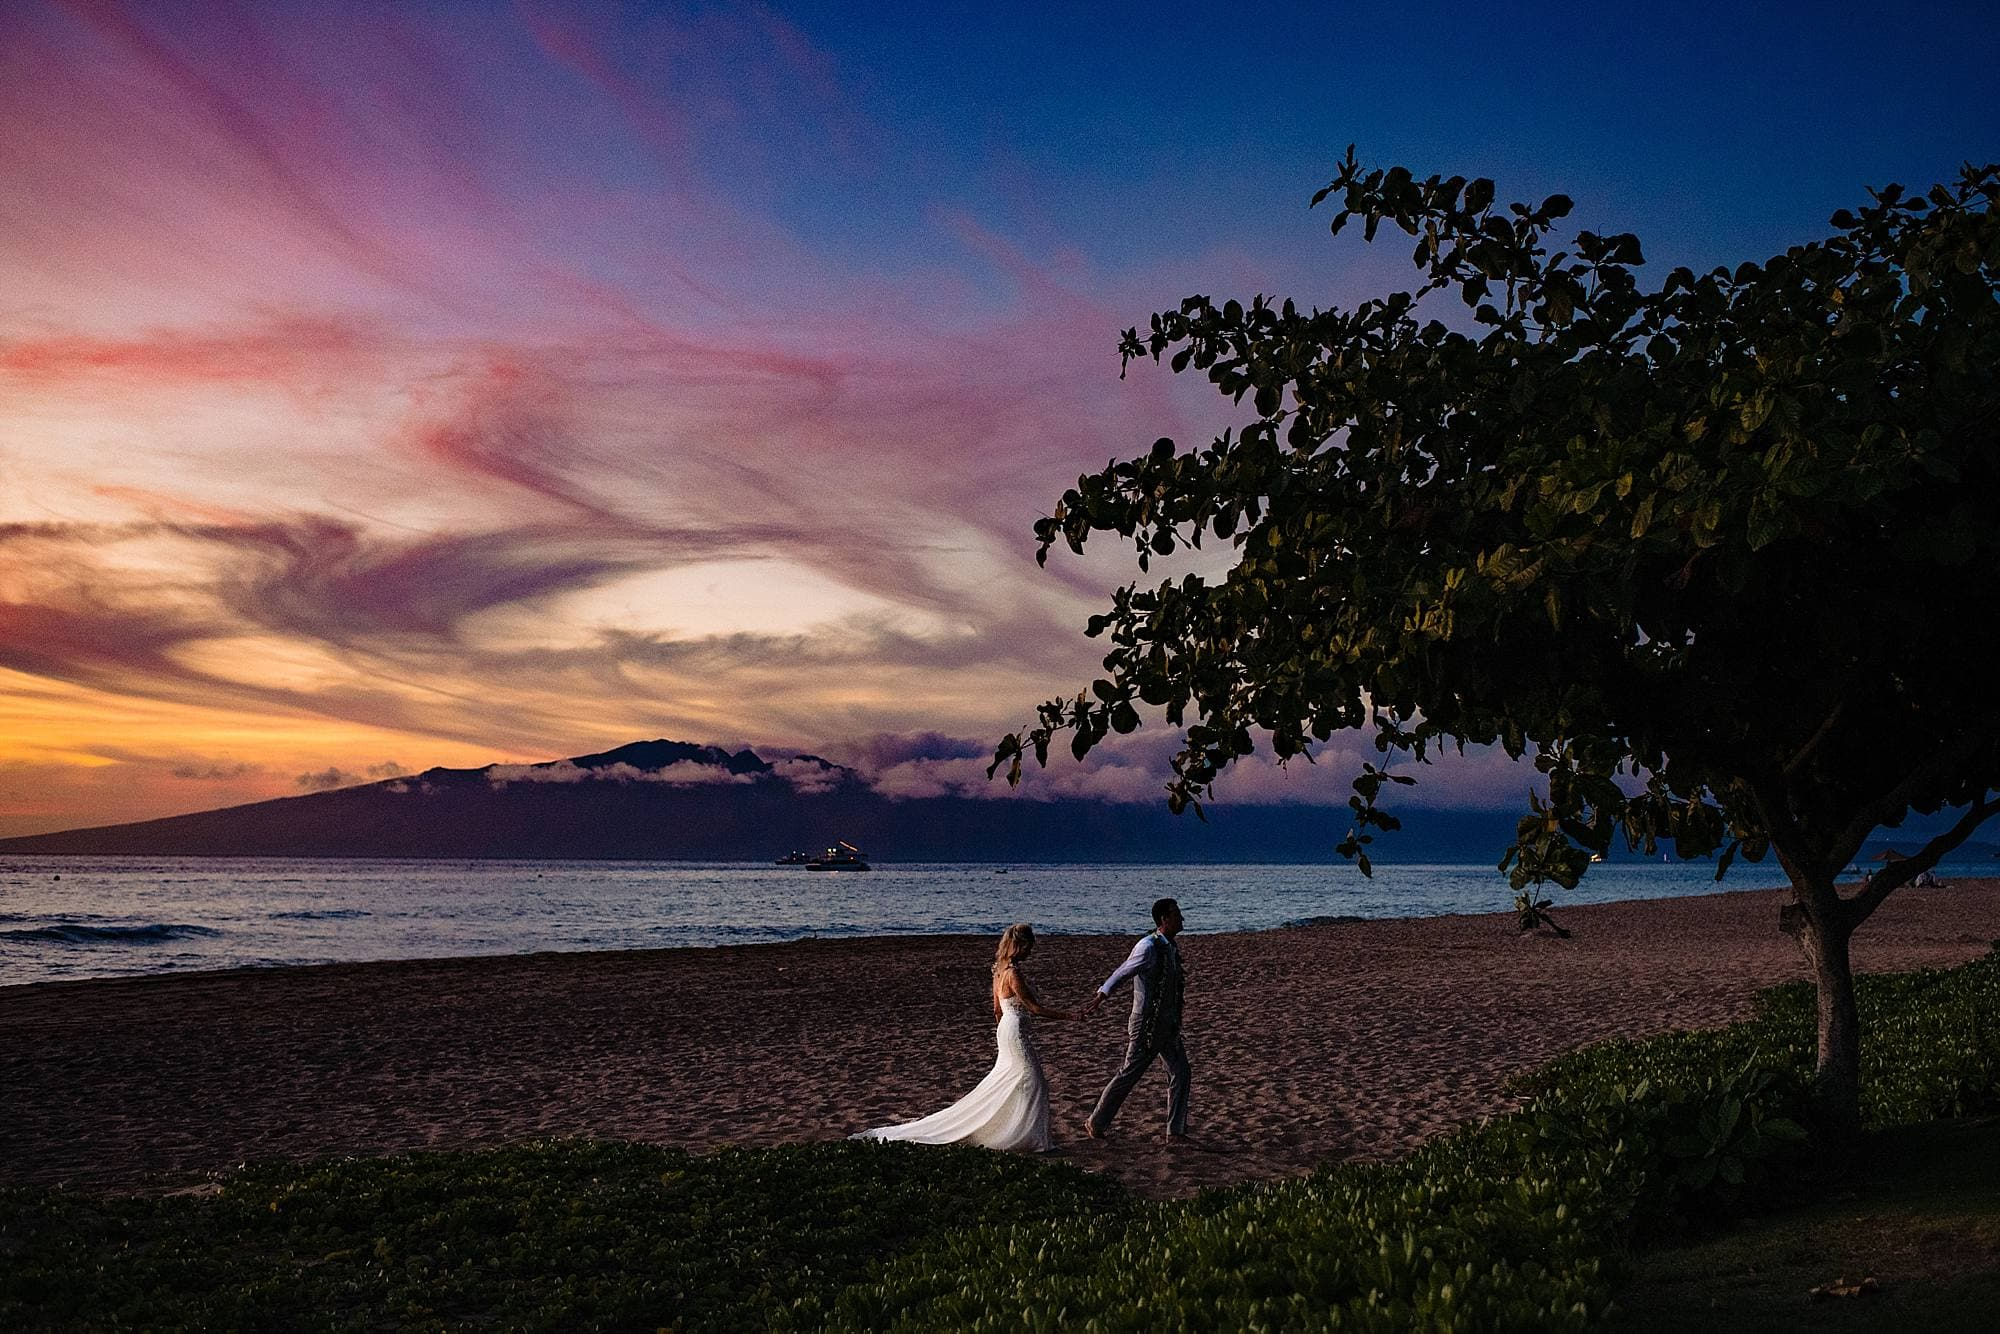 bride and groom at sunset in maui, hawaii